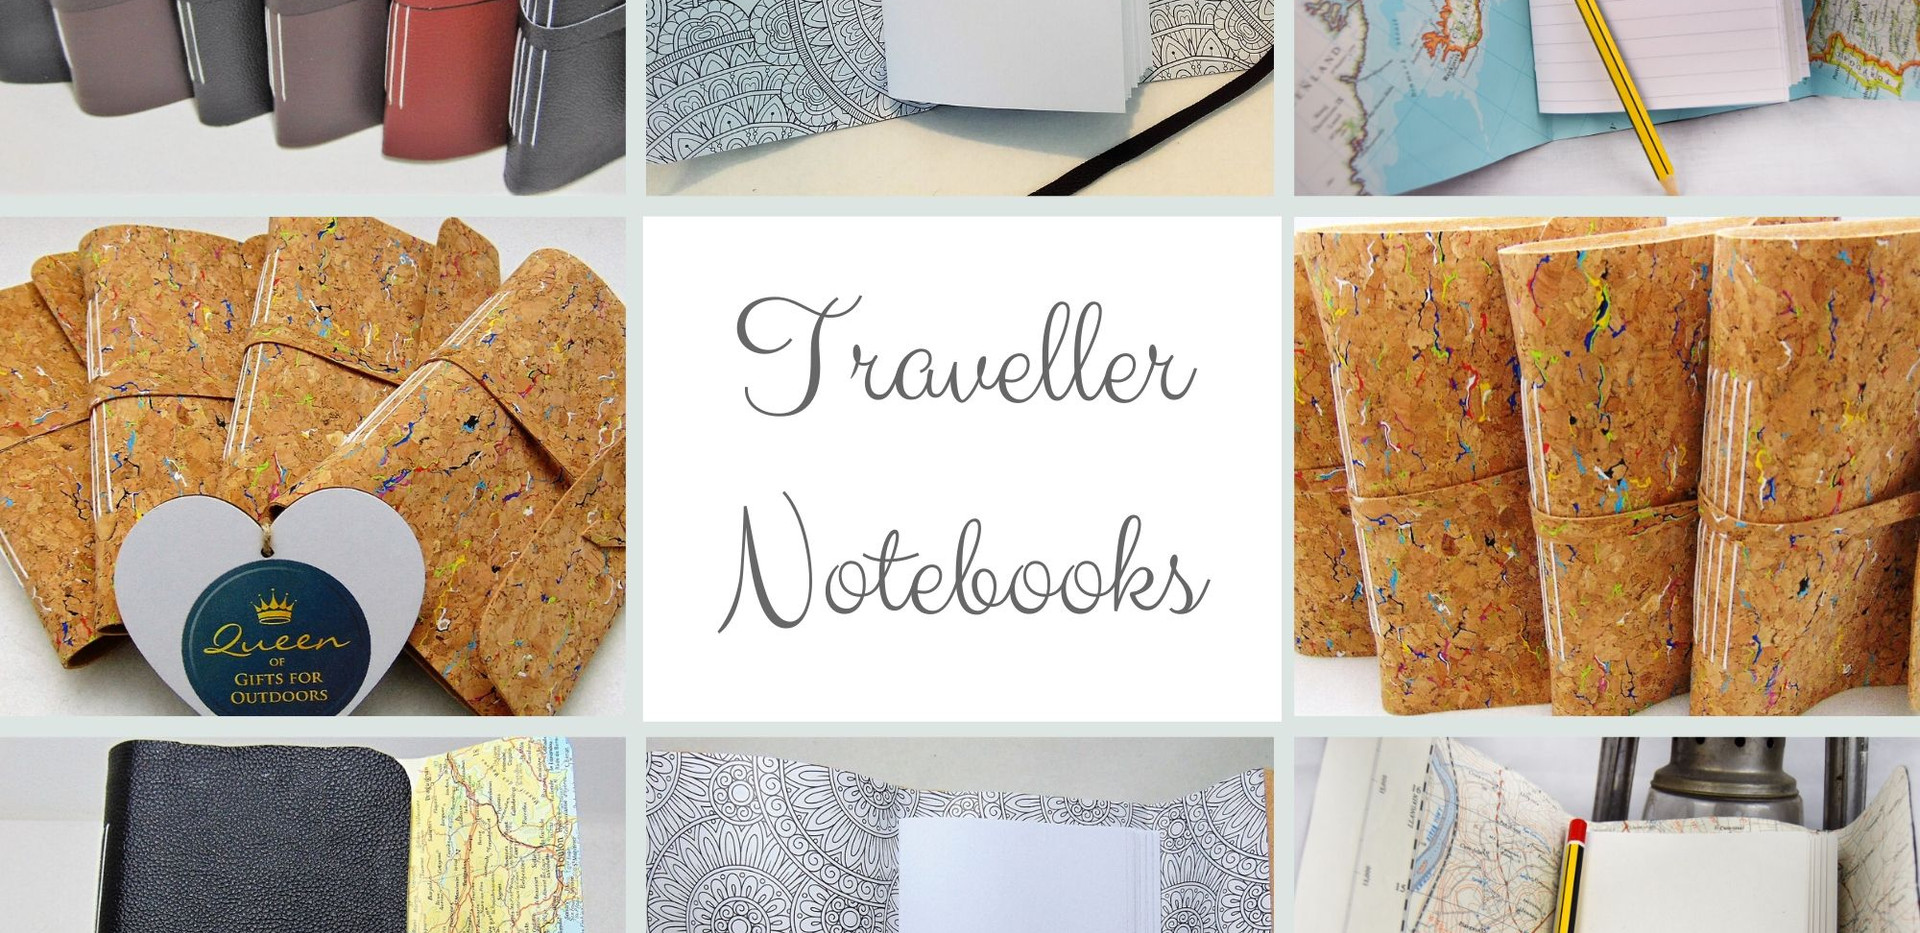 Traveller Notebooks col.jpg